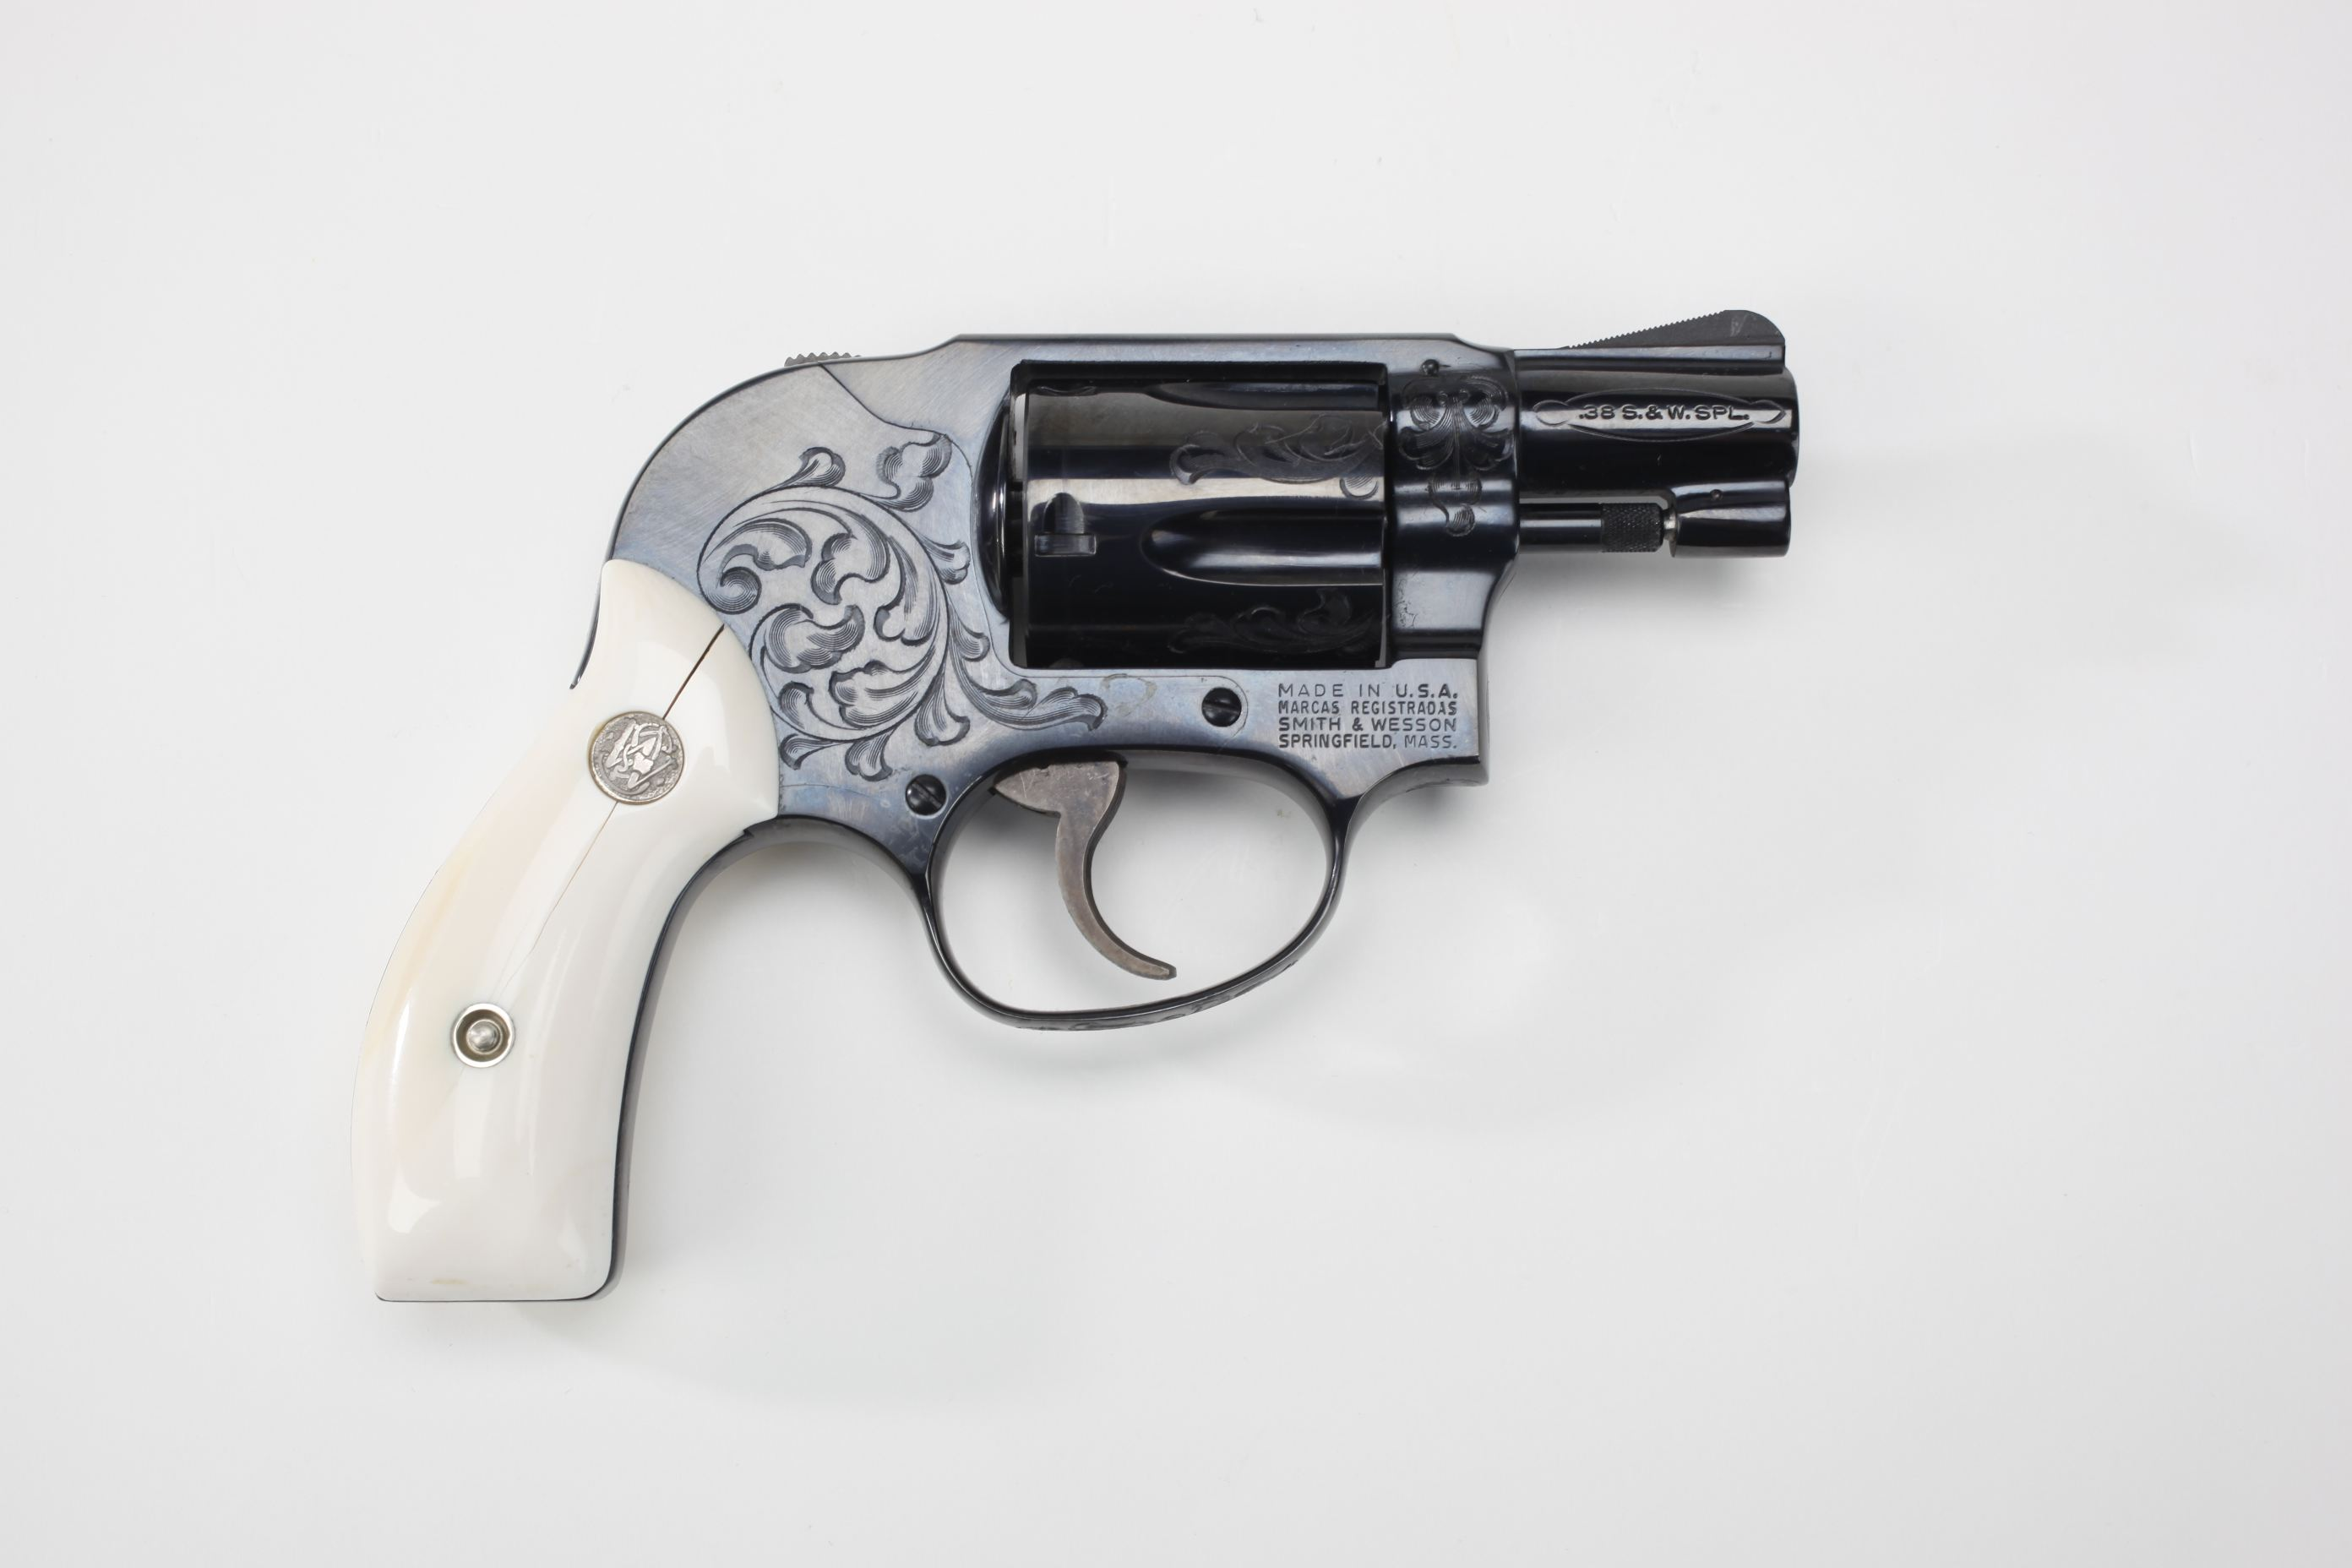 Smith & Wesson (Springfield, MA) Model 49 Double-Action Revolver